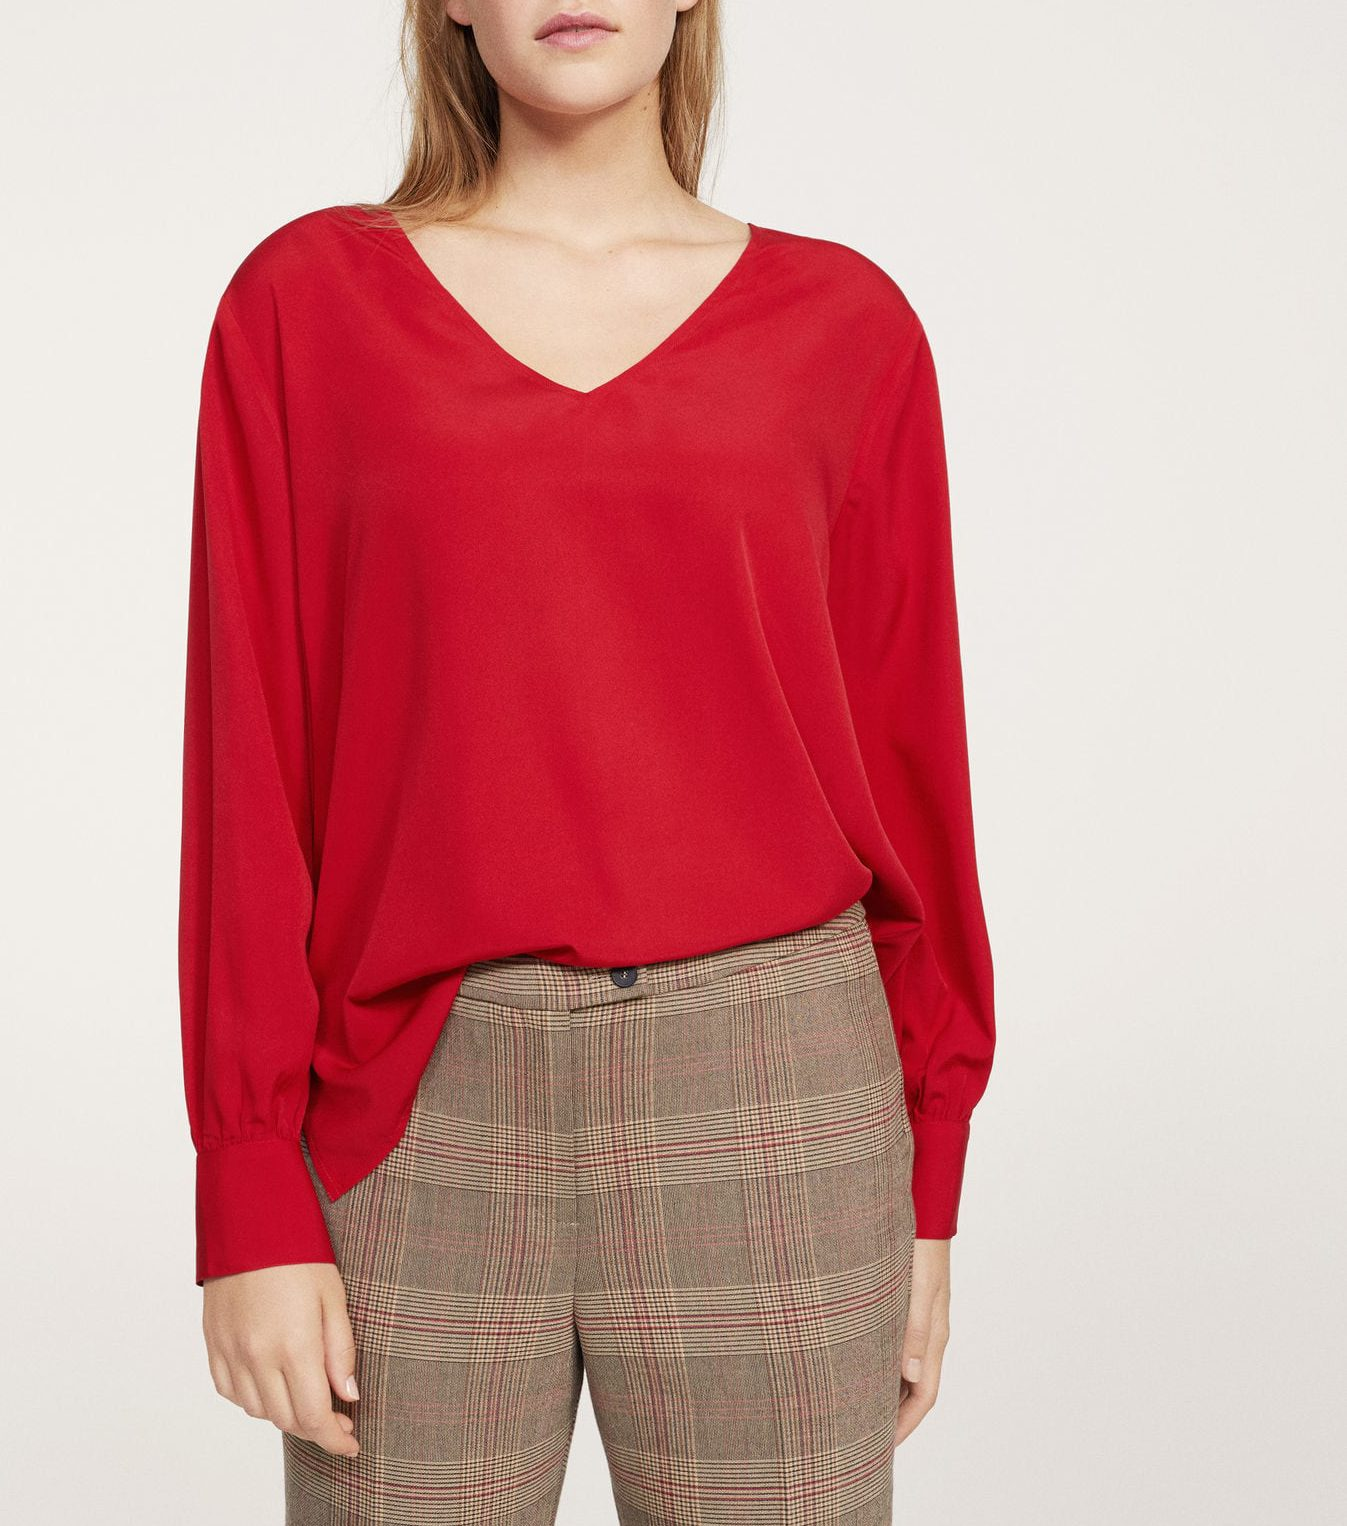 mango red top